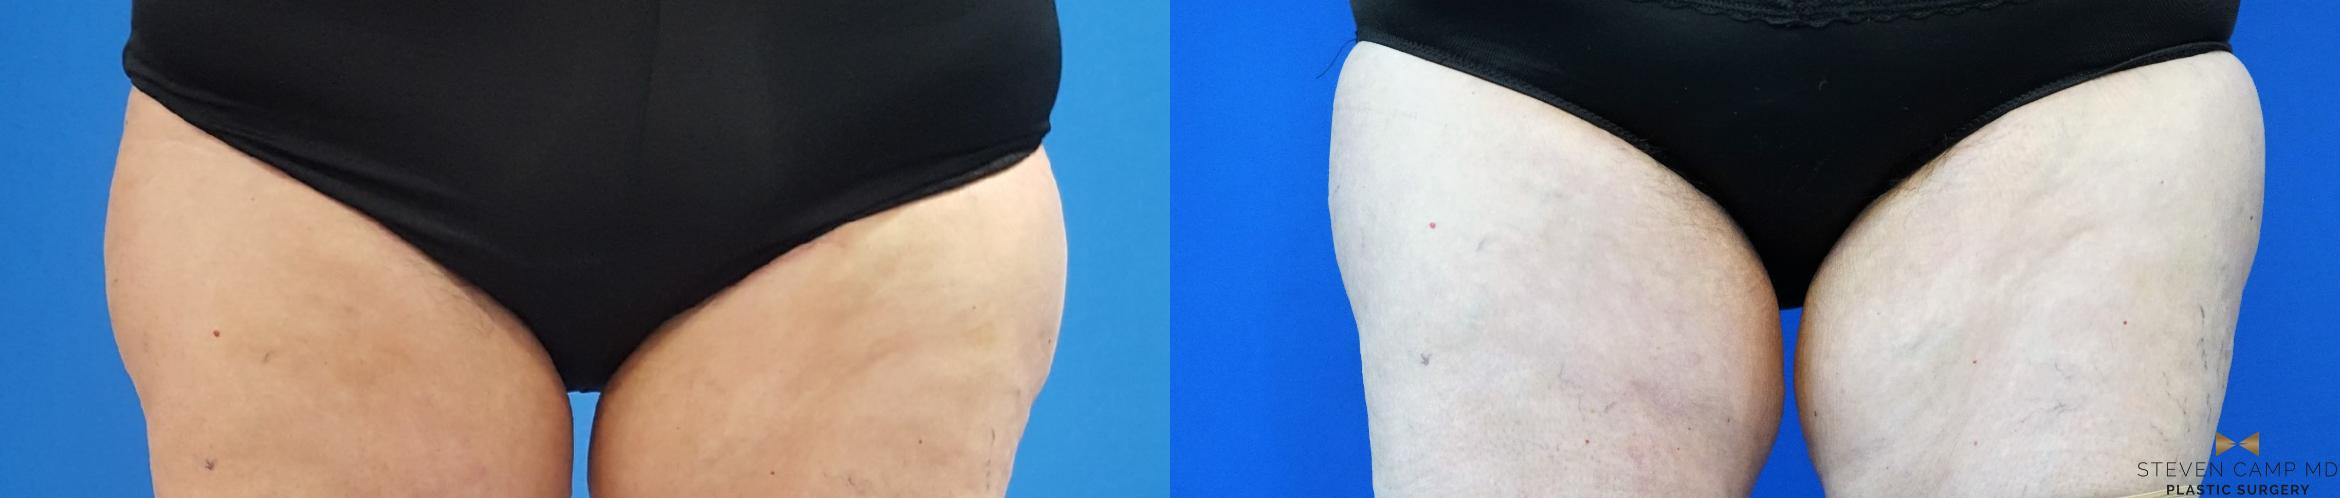 CoolSculpting Before & After Photo | Fort Worth, Texas | Steven Camp MD Plastic Surgery